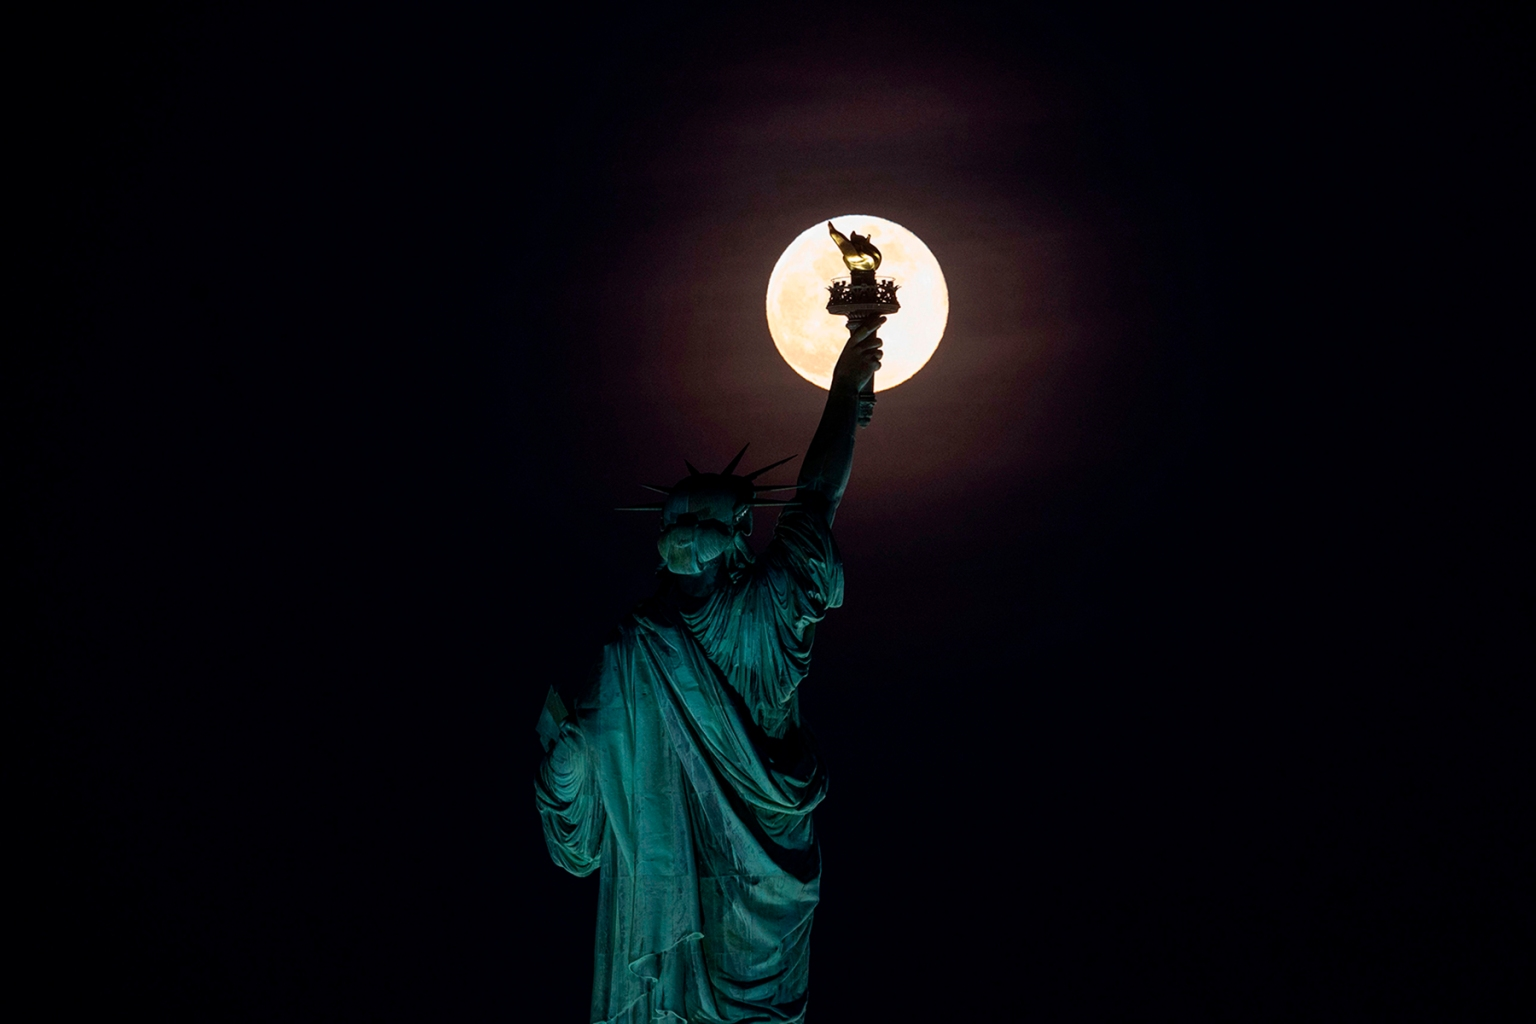 The full moon rises behind the Statue of Liberty in New York City on May 18. JOHANNES EISELE/AFP/Getty Images